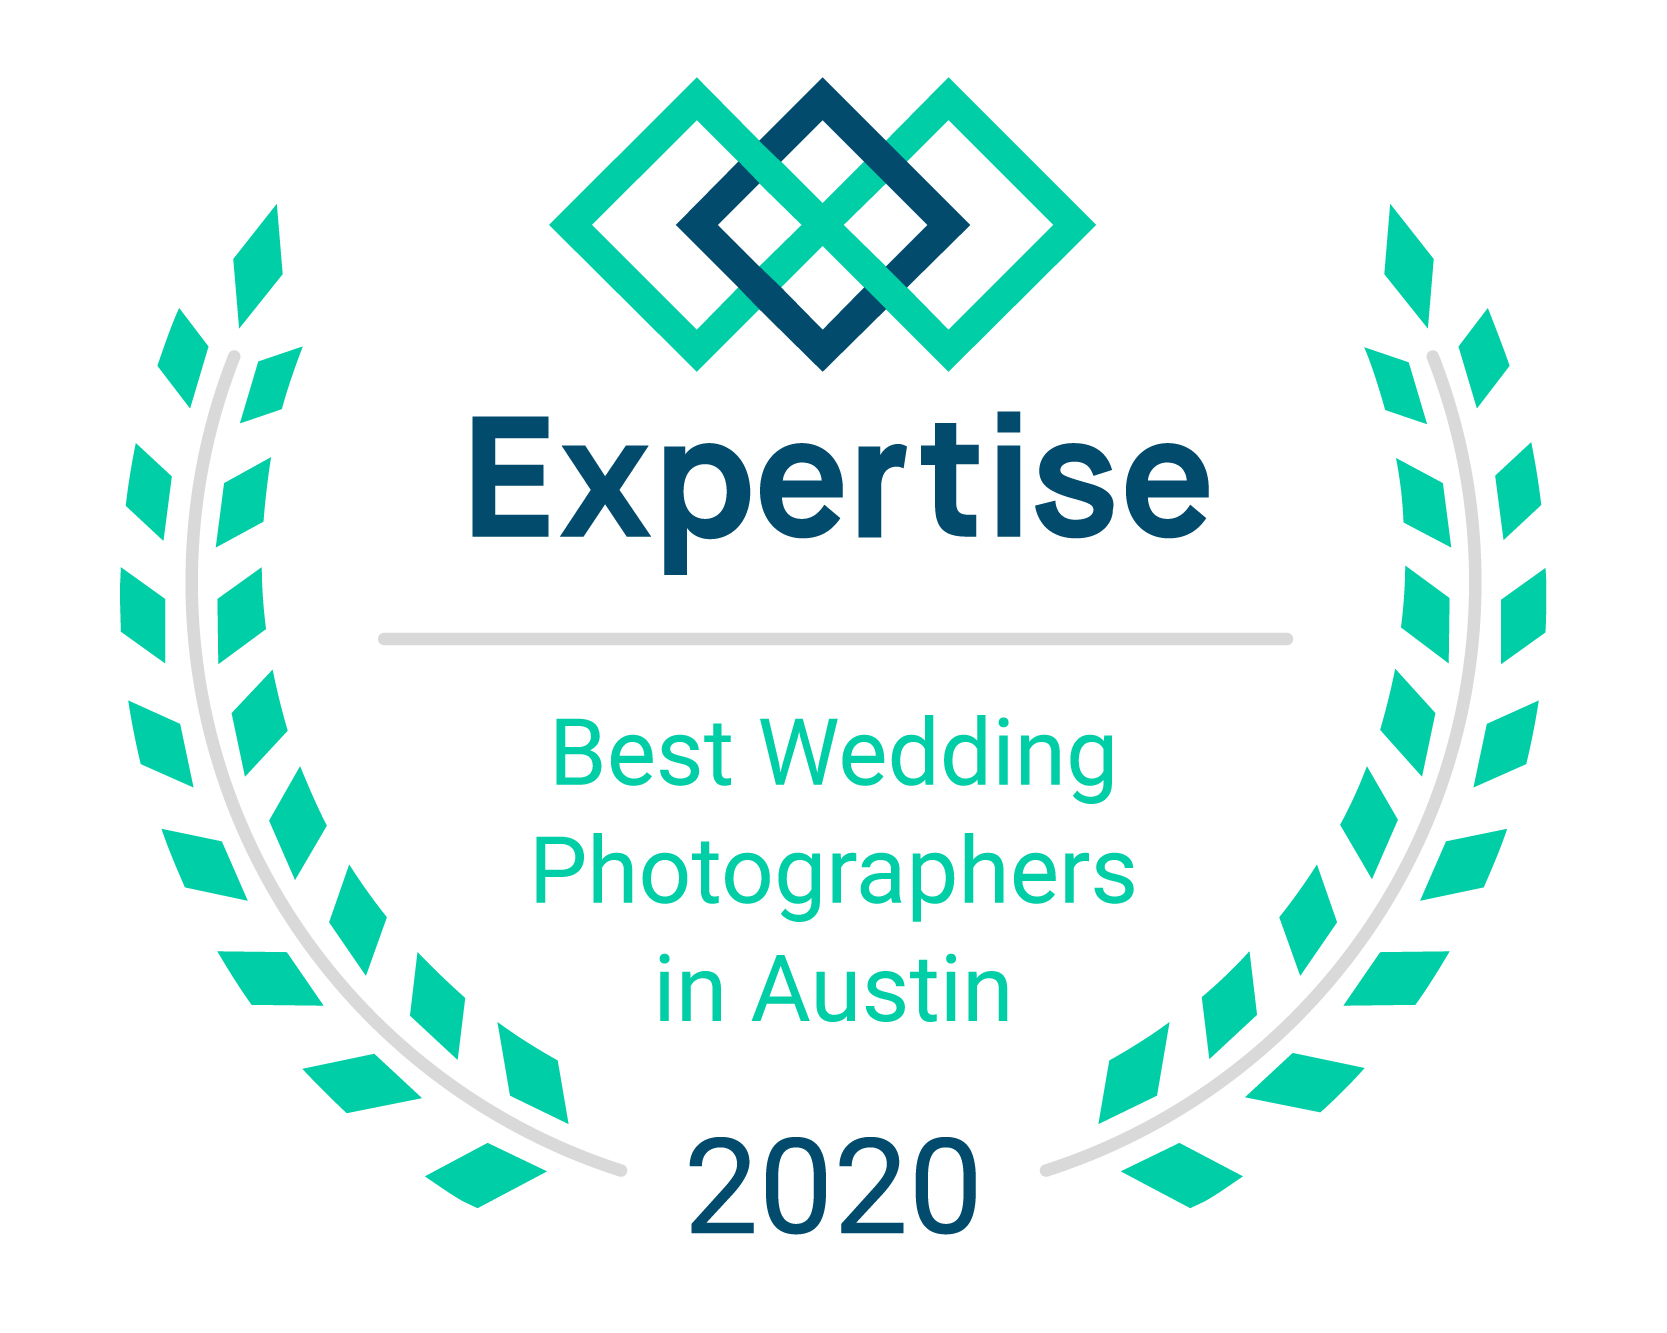 Austin Best Wedding Photographer